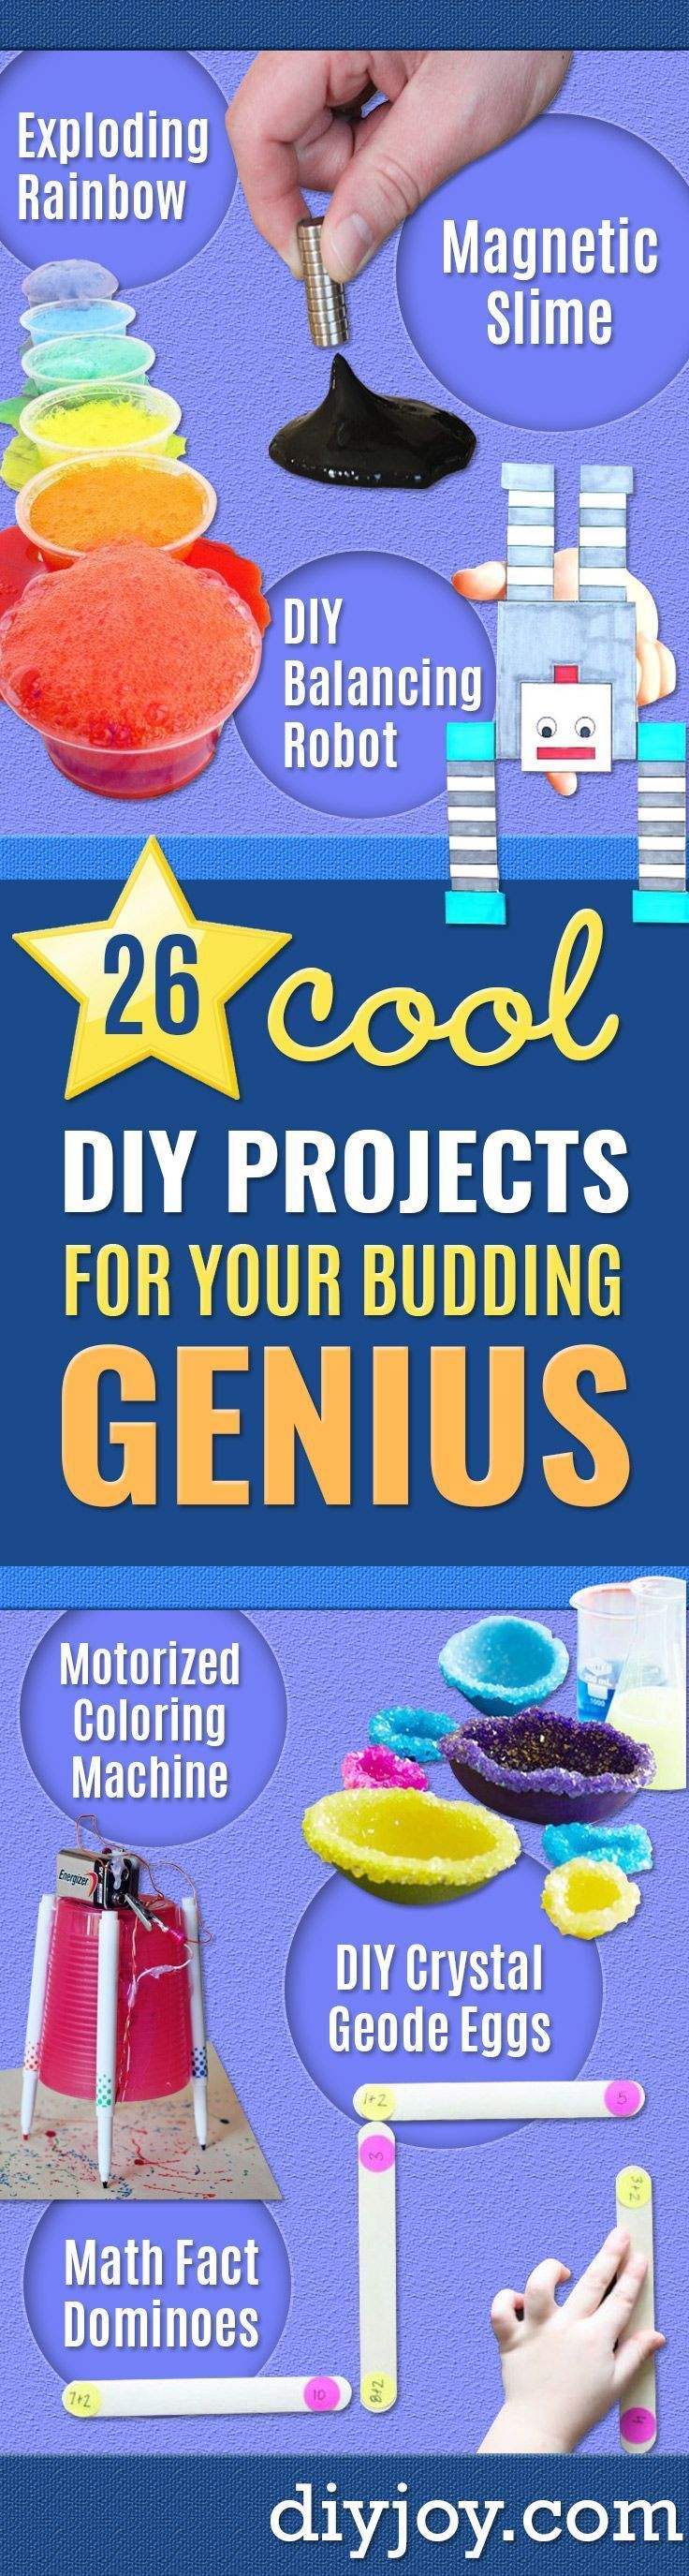 DIY Stem and Science Ideas for Kids and Teens - Fun and Easy Do It Yourself Projects and Crafts Using Math, Electronics, Engineering Concepts and Basic Building Skills - Creatve and Cool Project Tutorials For Kids To Make At Home This Summer - Boys, Girls and Teenagers Have Fun Making Room Decor, Experiments and Playtime STEM Fun http://diyjoy.com/diy-stem-science-projects #artsandcraftsforkidstodoathome